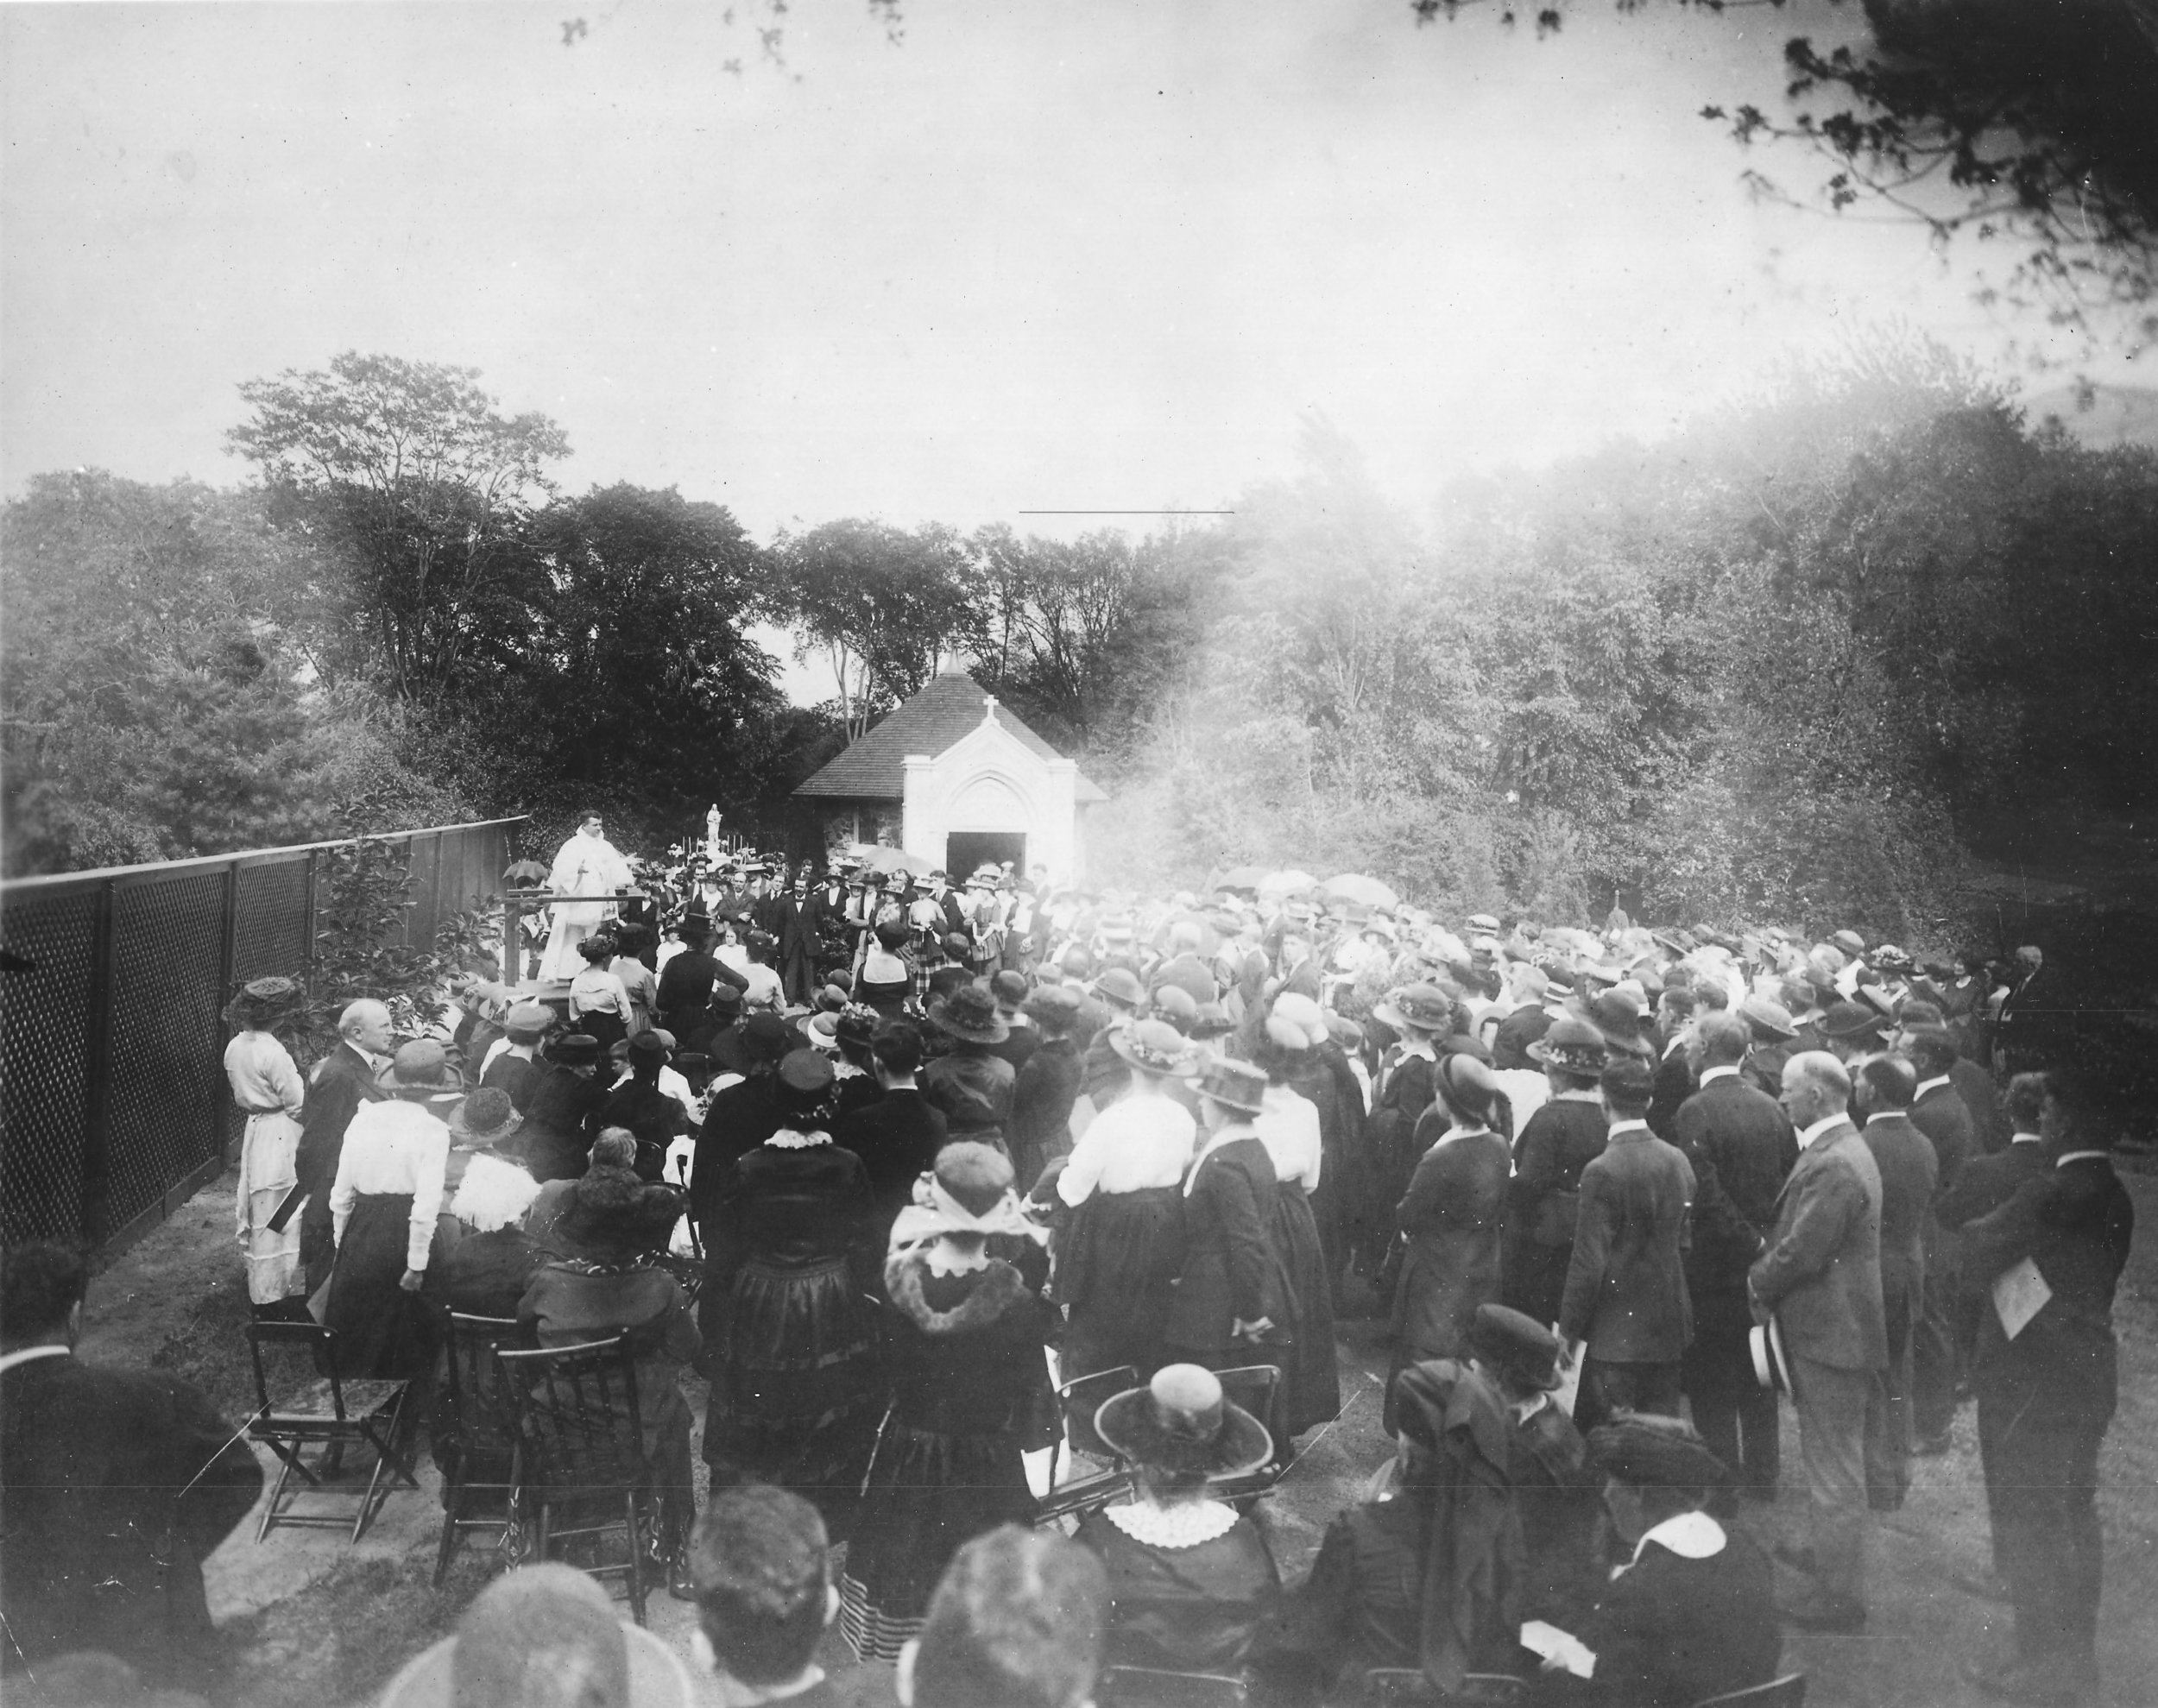 May 21, 1921 First Public Pilgrimage